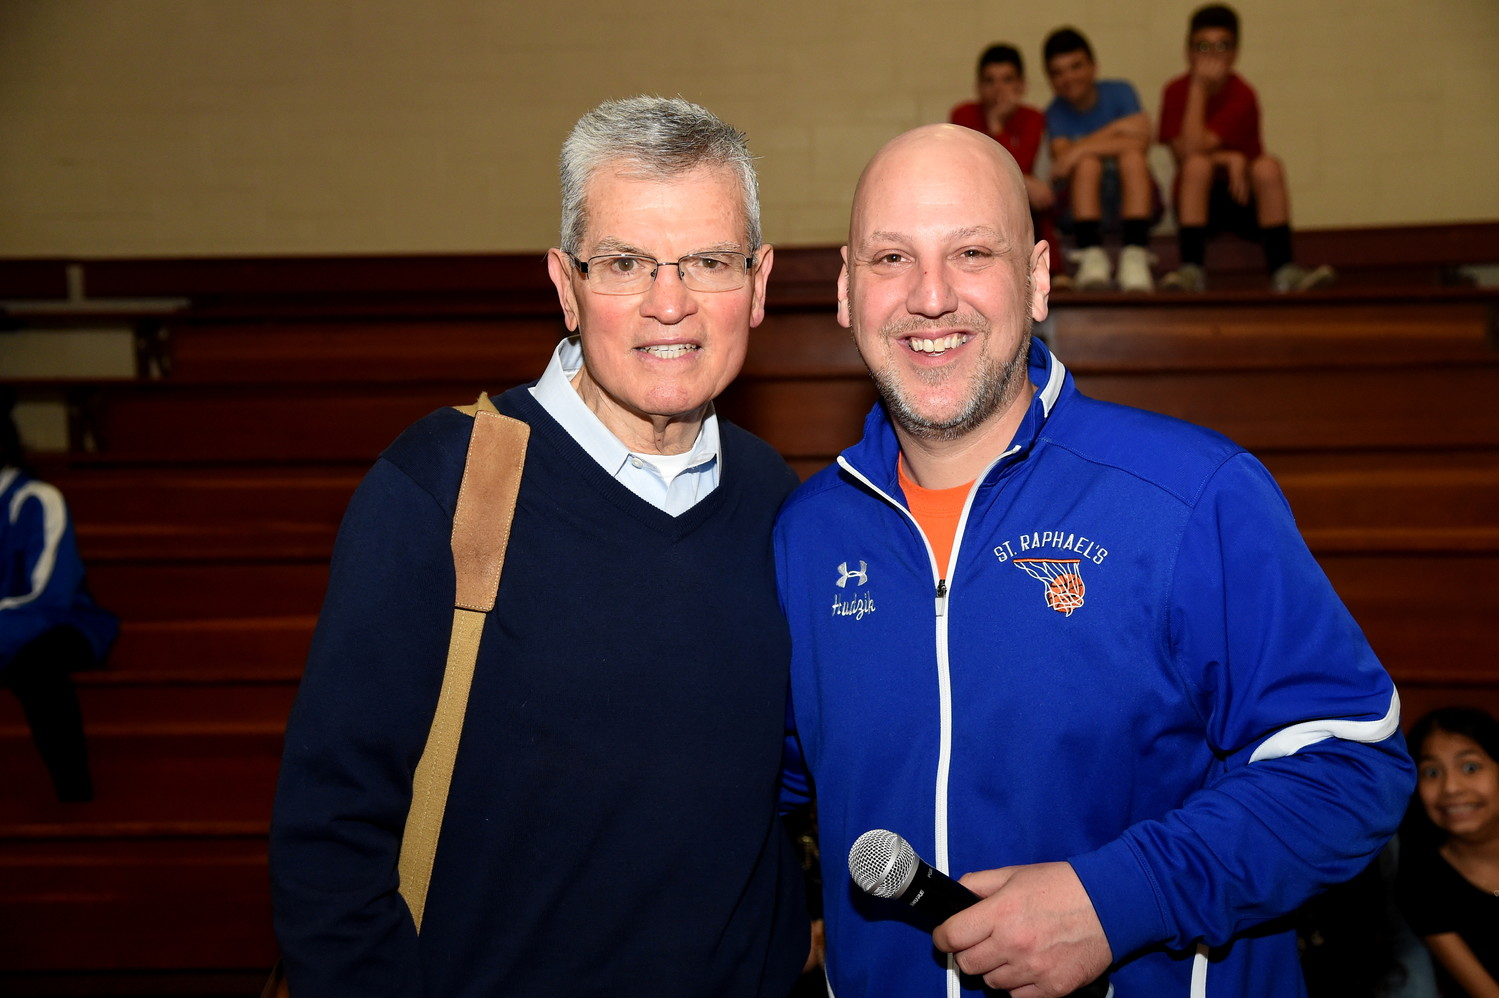 Former St. Anthony's High School basketball coach and author Gus